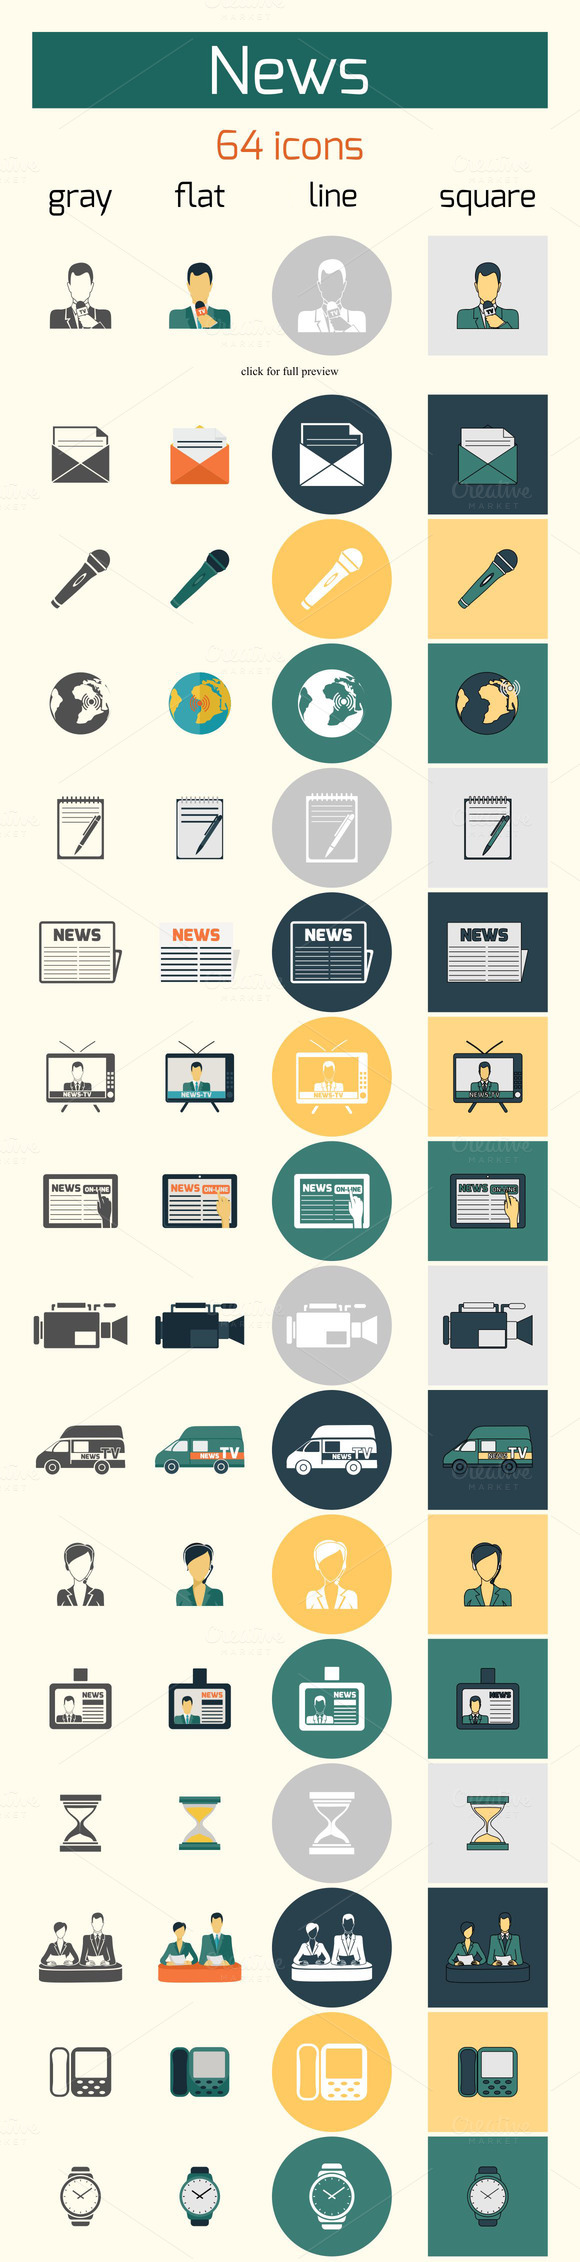 64 News Media Vector Icons Set